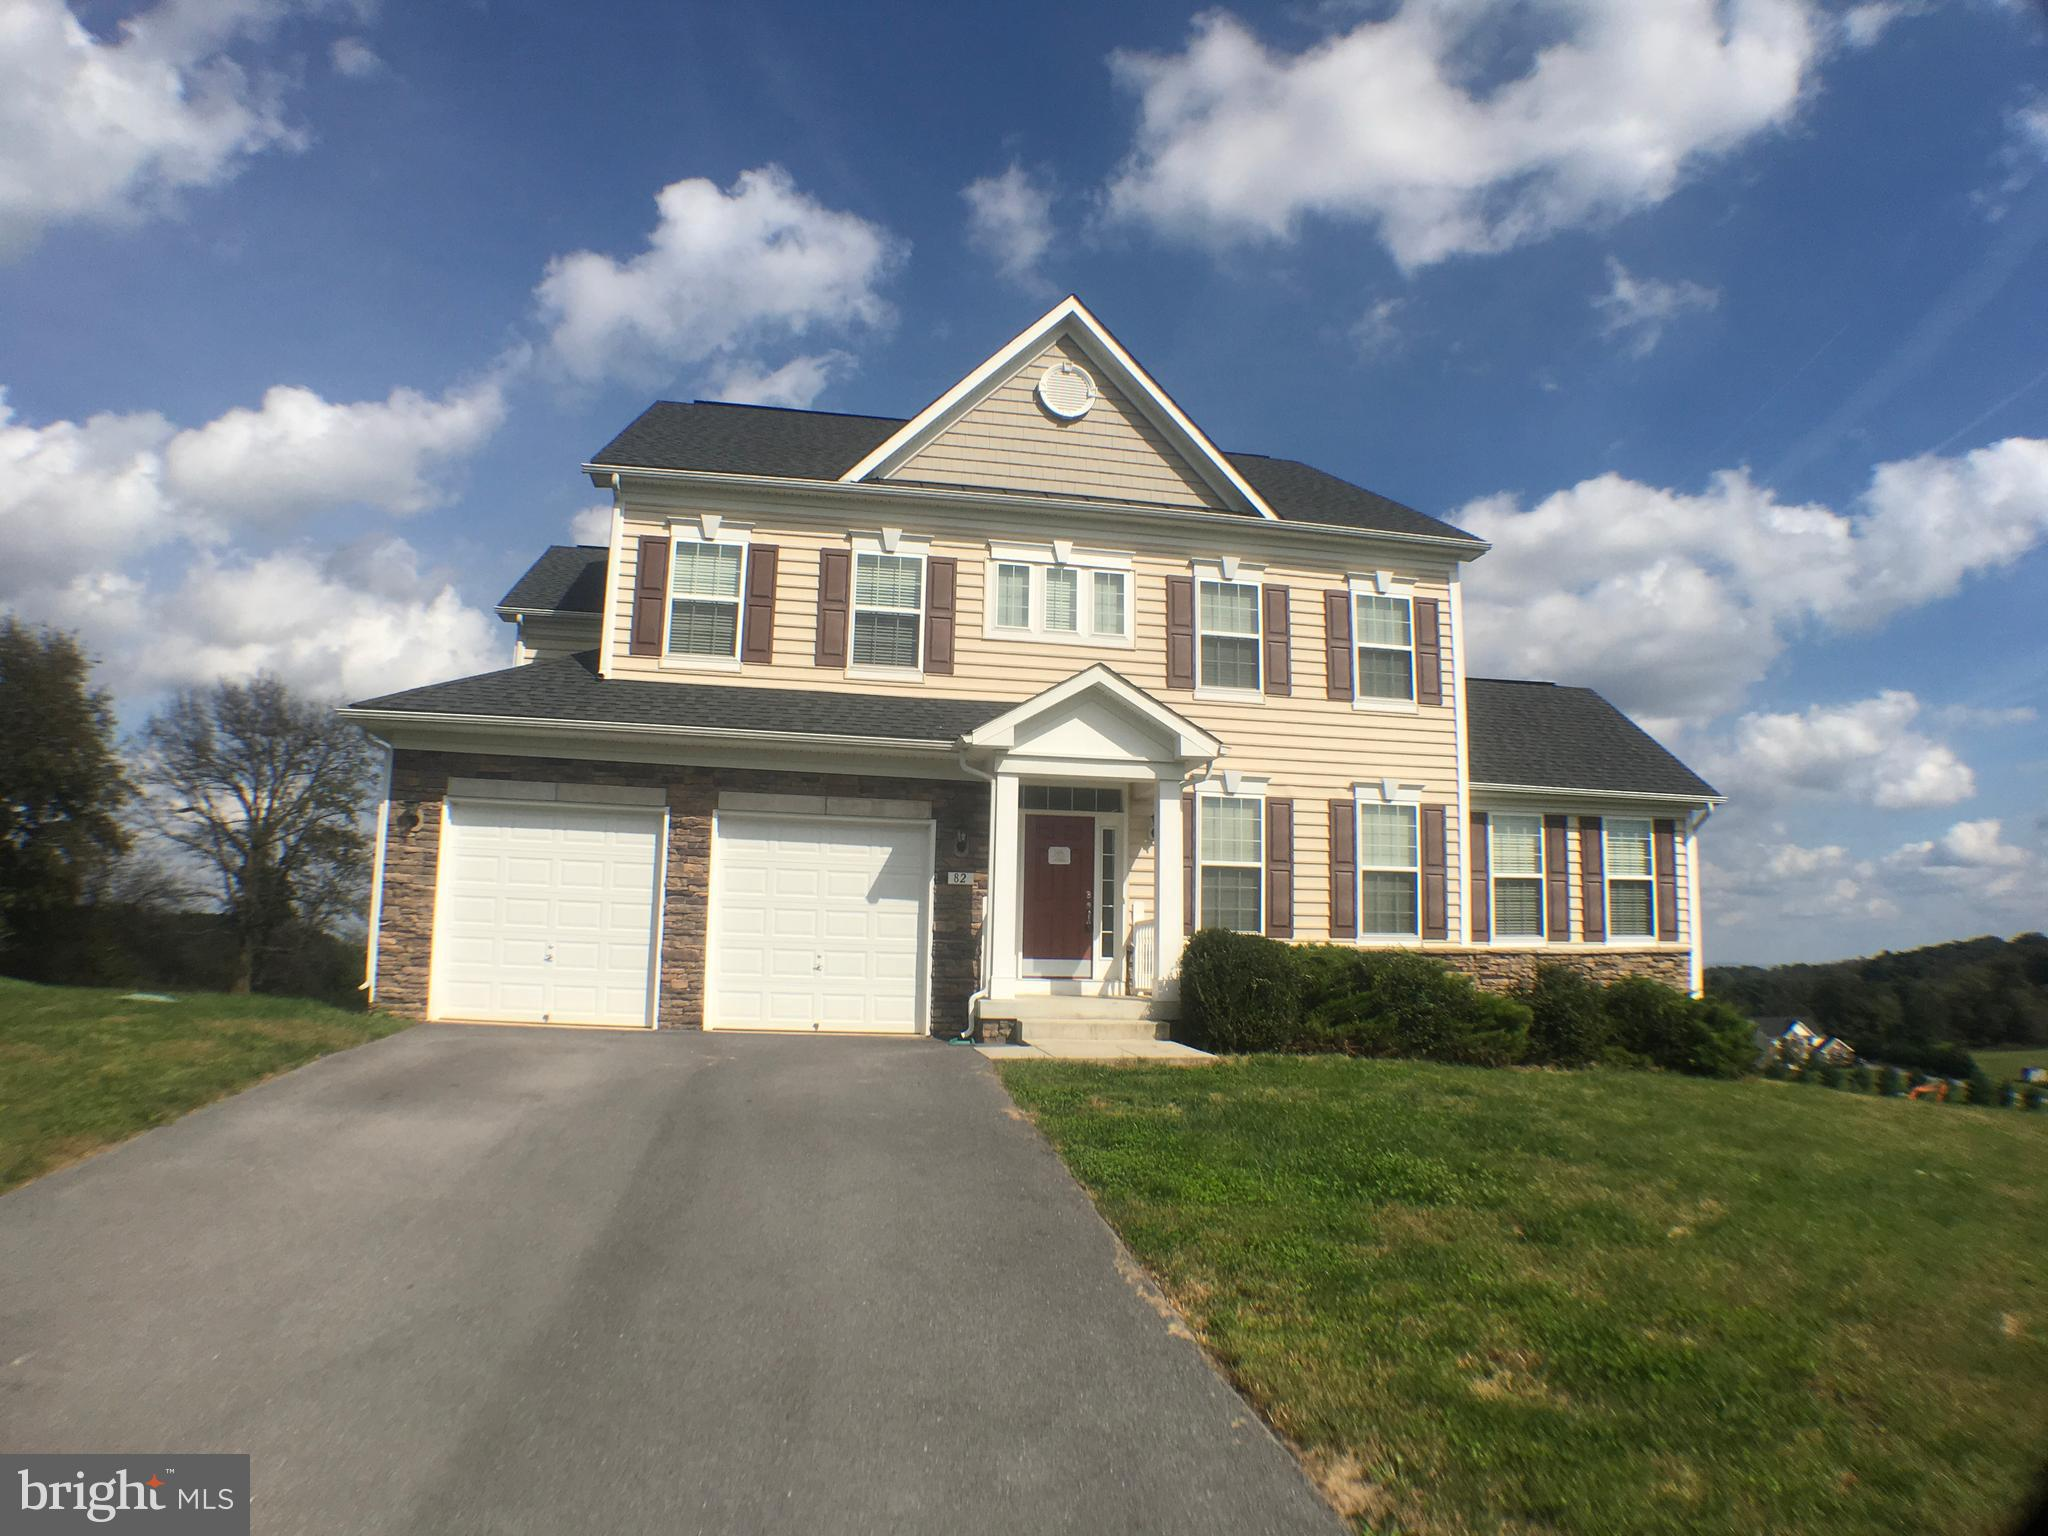 Enjoy Estate Style Living in the established Ridges of Tuscarora Neighborhood.   Gorgeous mountain views & easy commuter access to I81 & Rt 9 MD/VA Large custom built Colonial  separate living and dining rooms.  Den/Office on main level with lots of natural light, fireplace in family room, large rec room on lower level with full bath some hardwood floors, rear deck, great views & walkout basement.